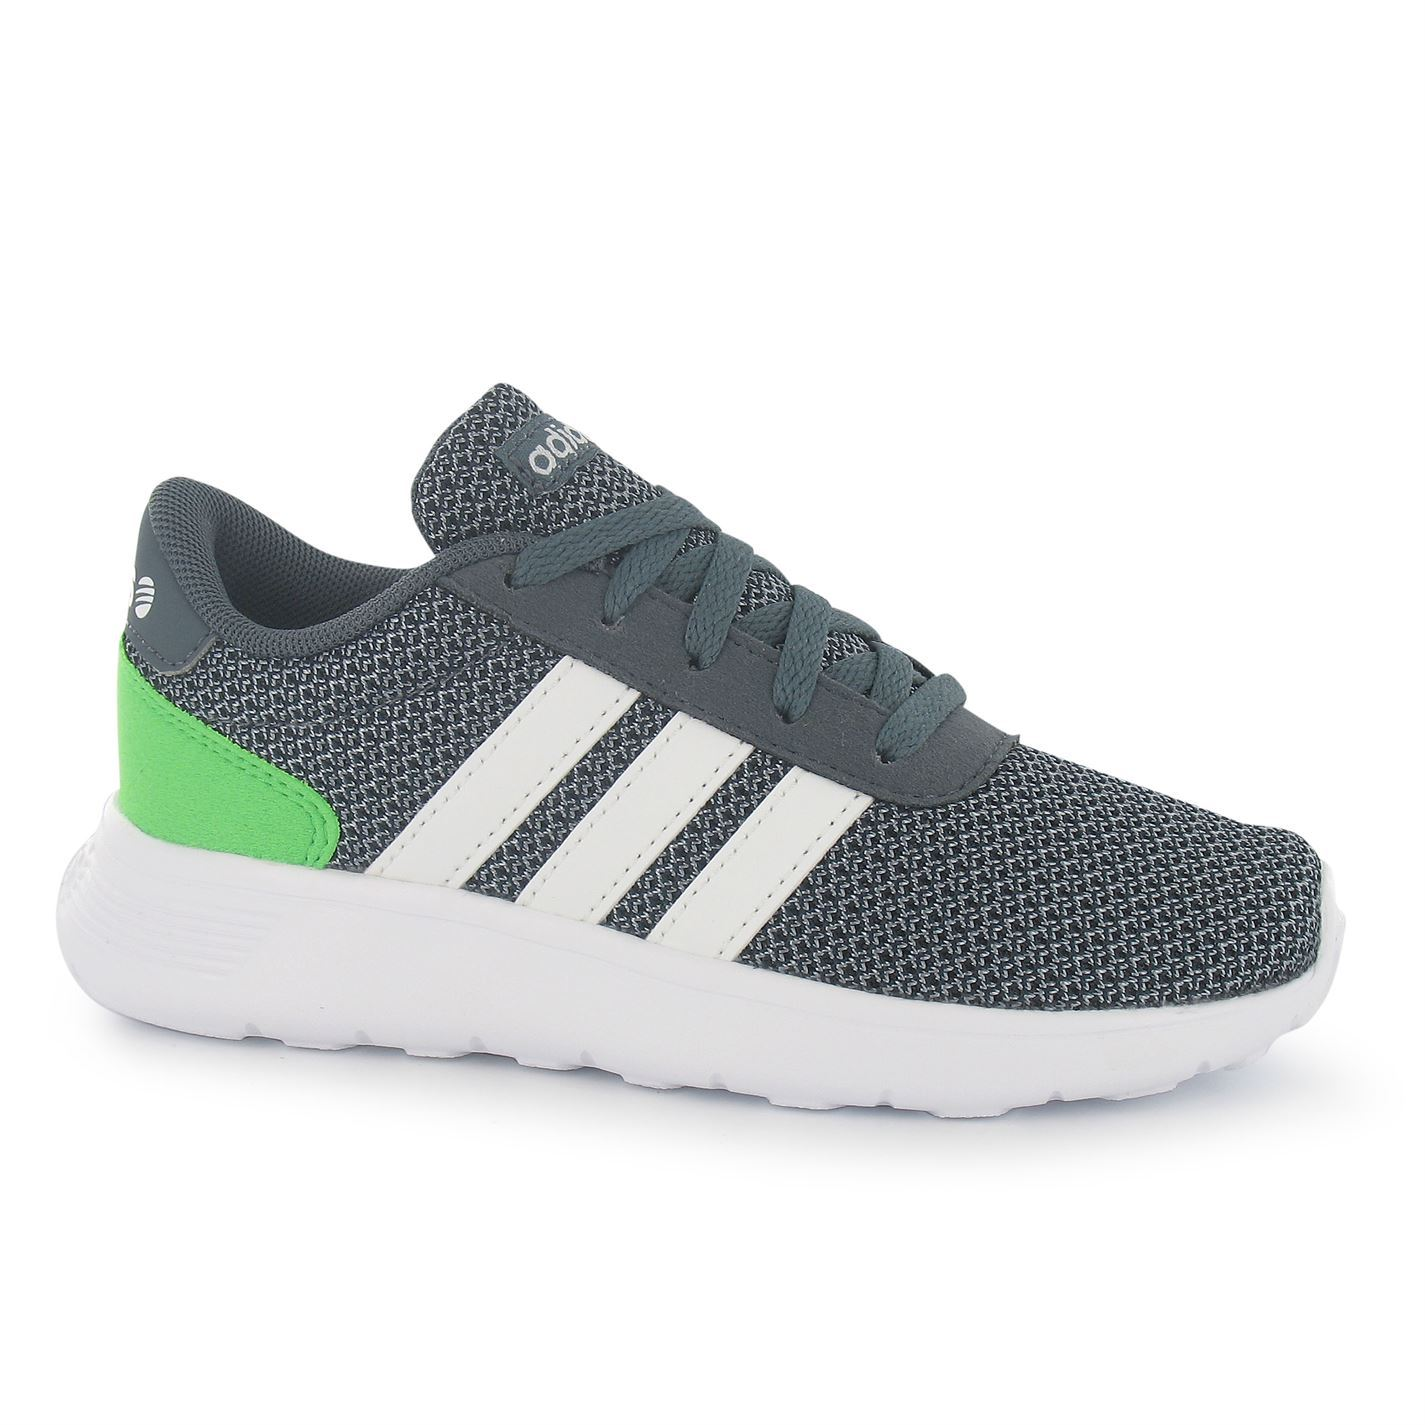 Adidas Shoes For Kids Boys wallbank-lfc.co.uk